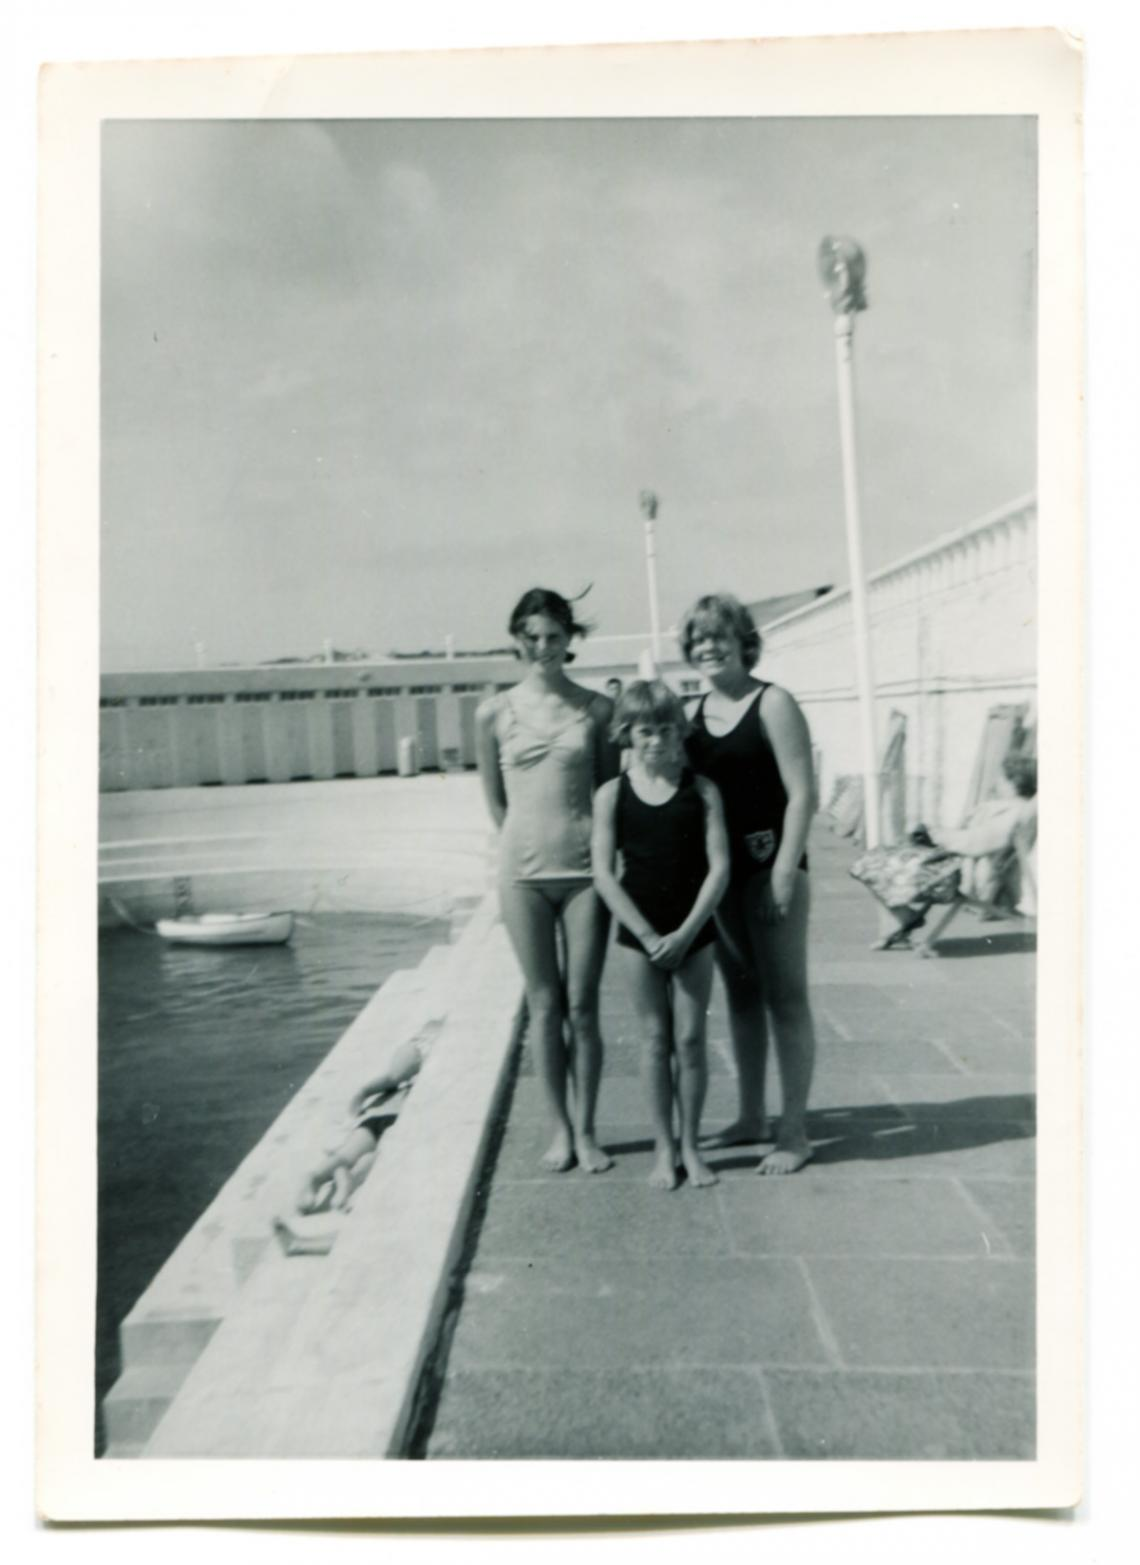 Ruth Trevenen, Judith Tresidder and a younger girl, Liz Jilbert, at Jubilee Pool